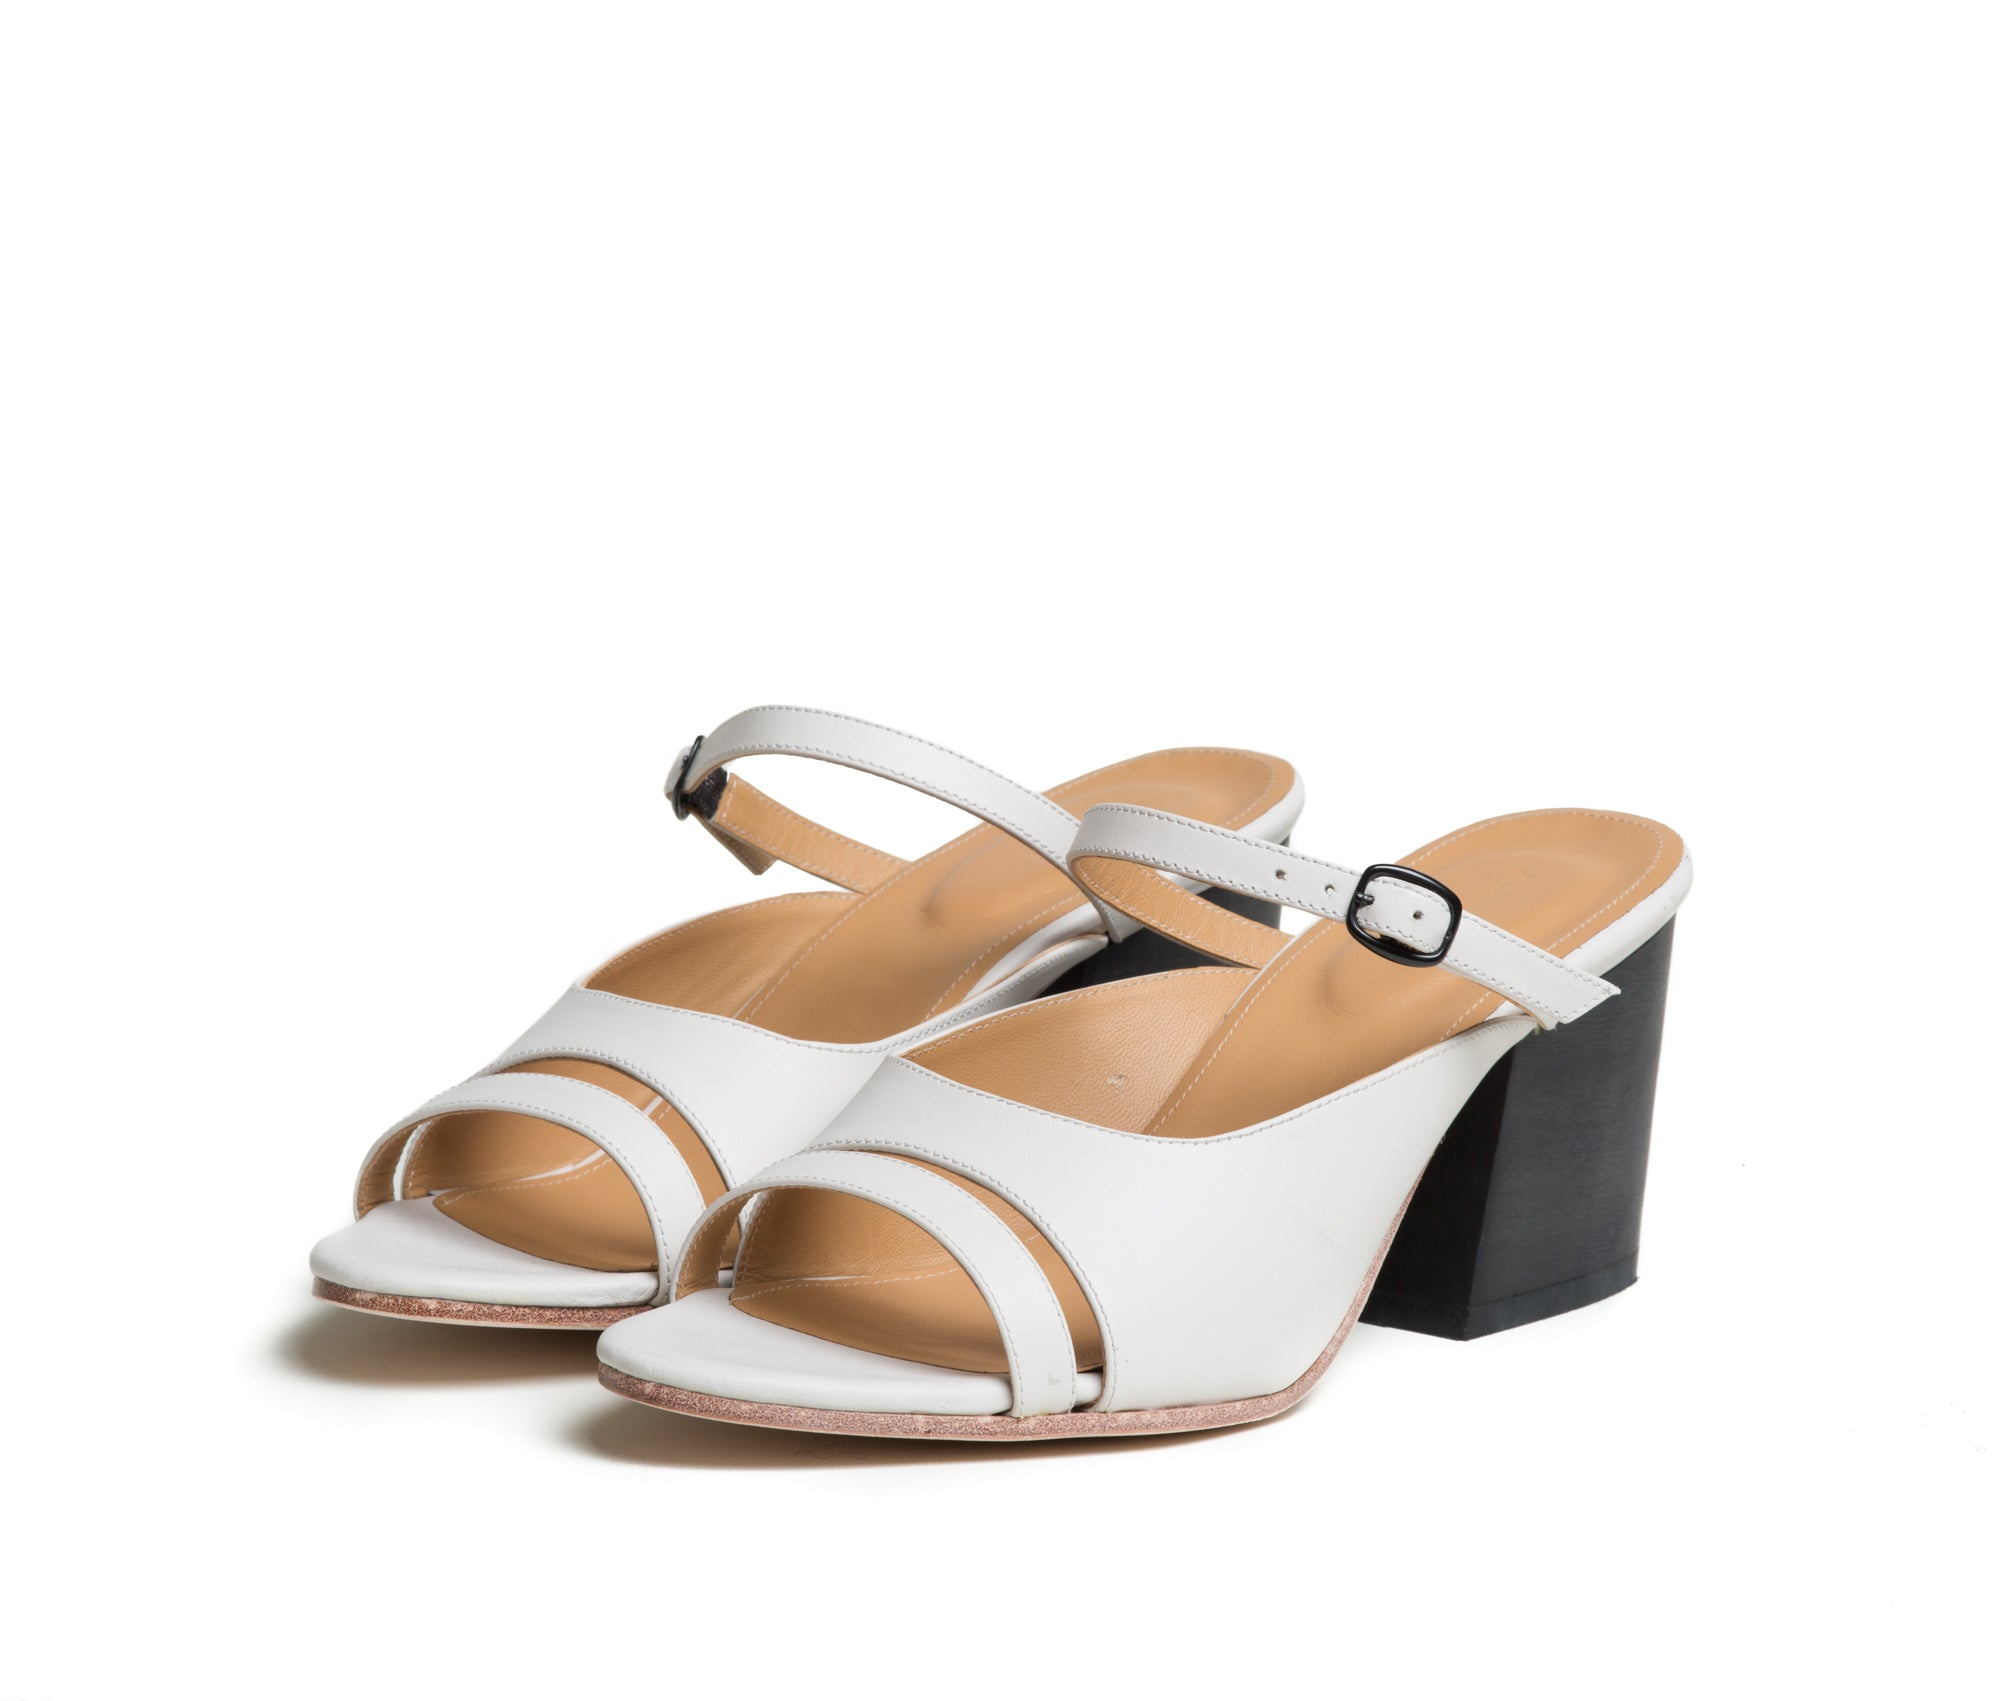 seta three piece buckled slide sandal with wood heel - lunar smooth leather